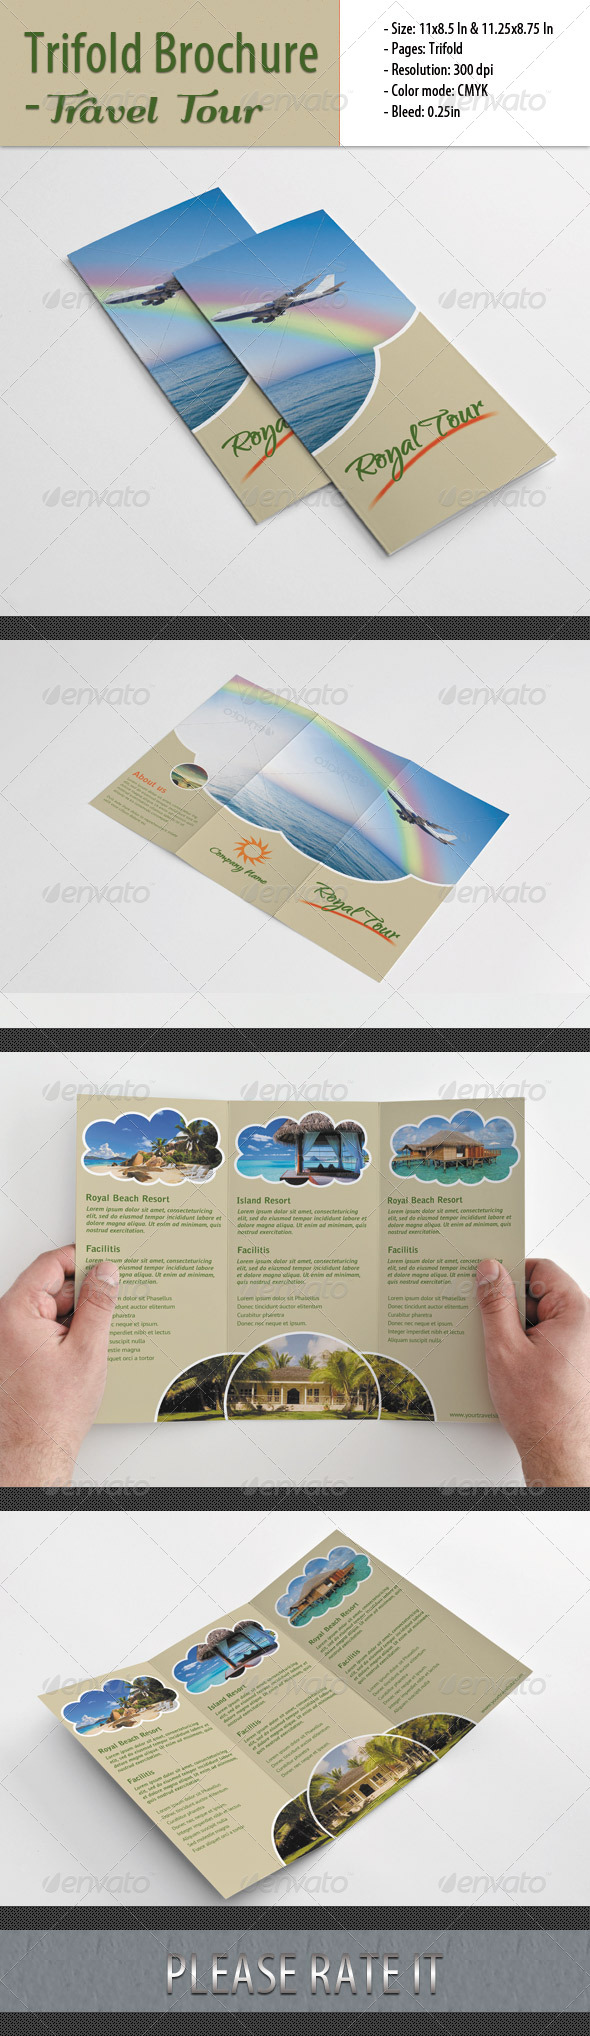 GraphicRiver Trifold Brochure For Travel Tour 4751678